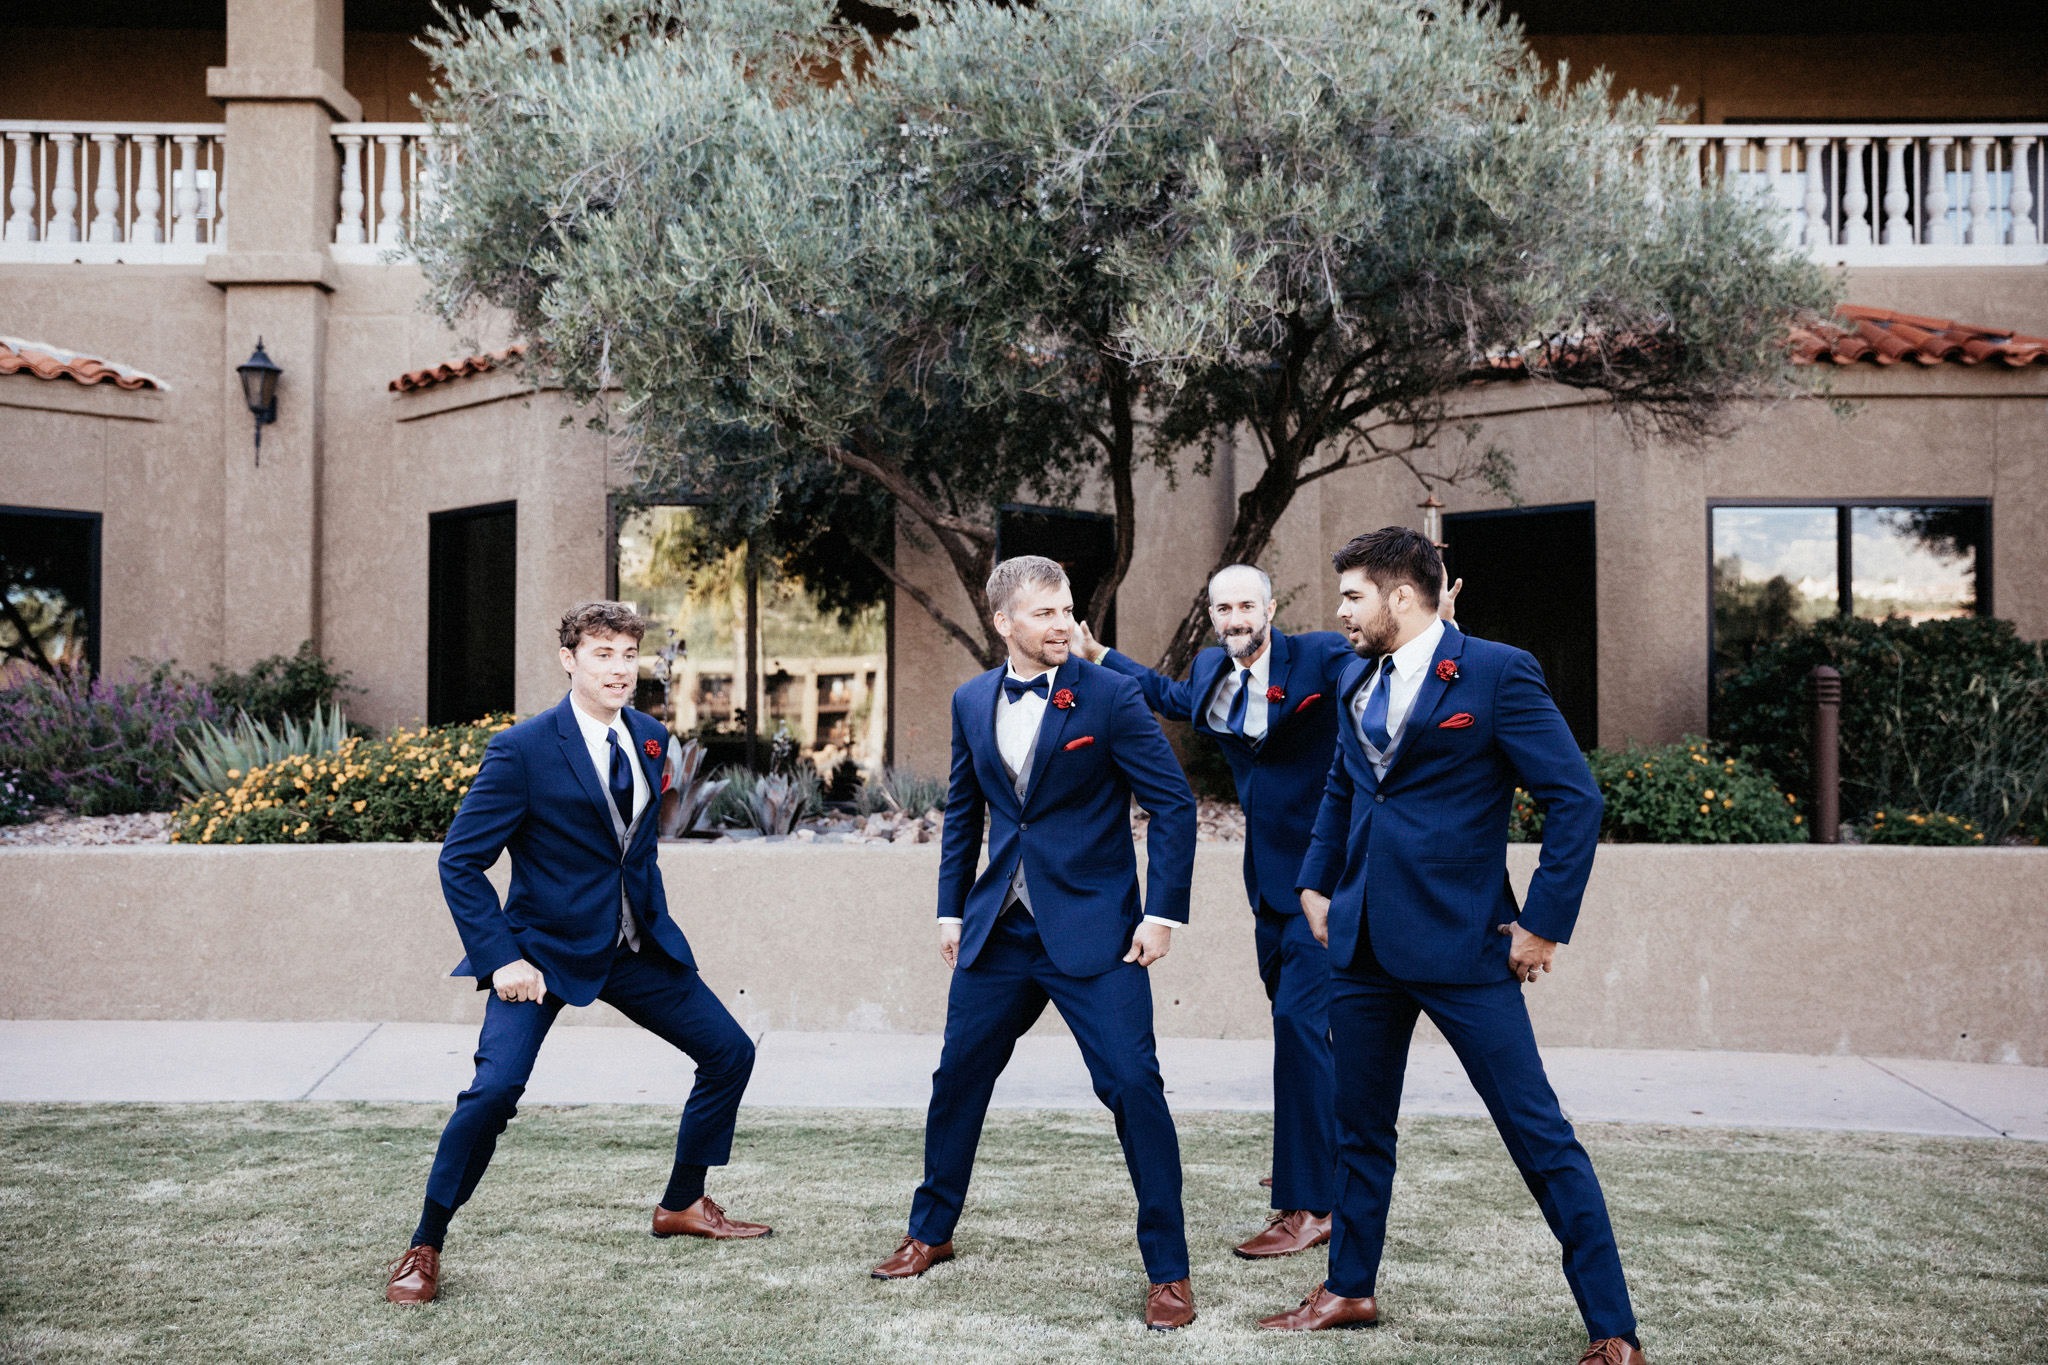 Tucson Wedding Photographer (49 of 117).jpg